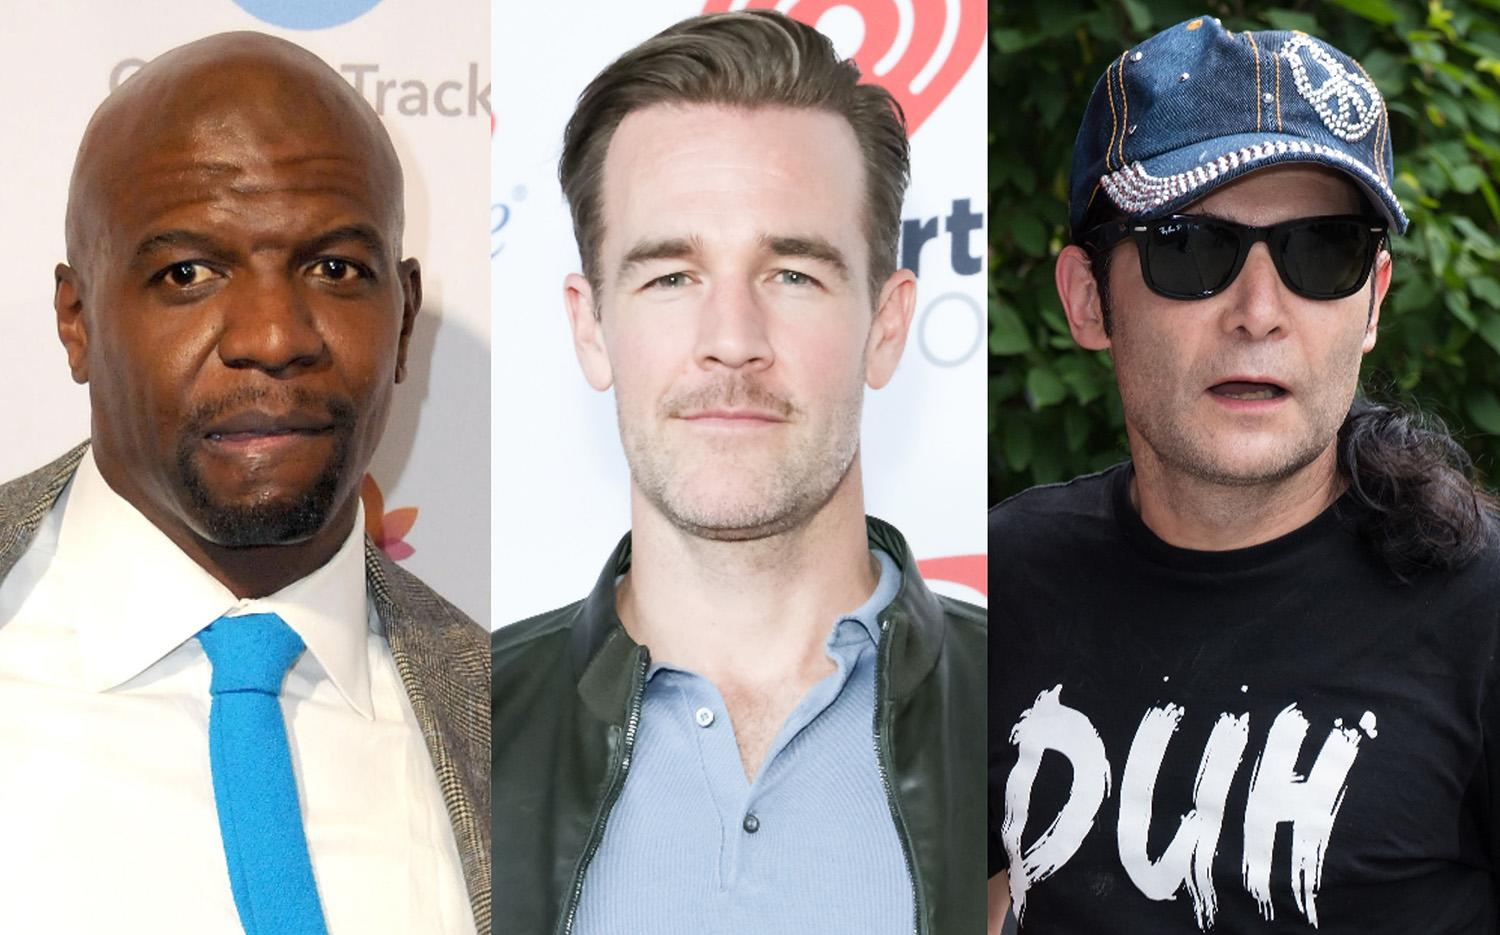 Terry Crews, James Van Der Beek, and Corey Feldman are some of the men speaking out about sexual misconduct in Hollywood. (Photo: Getty Images)